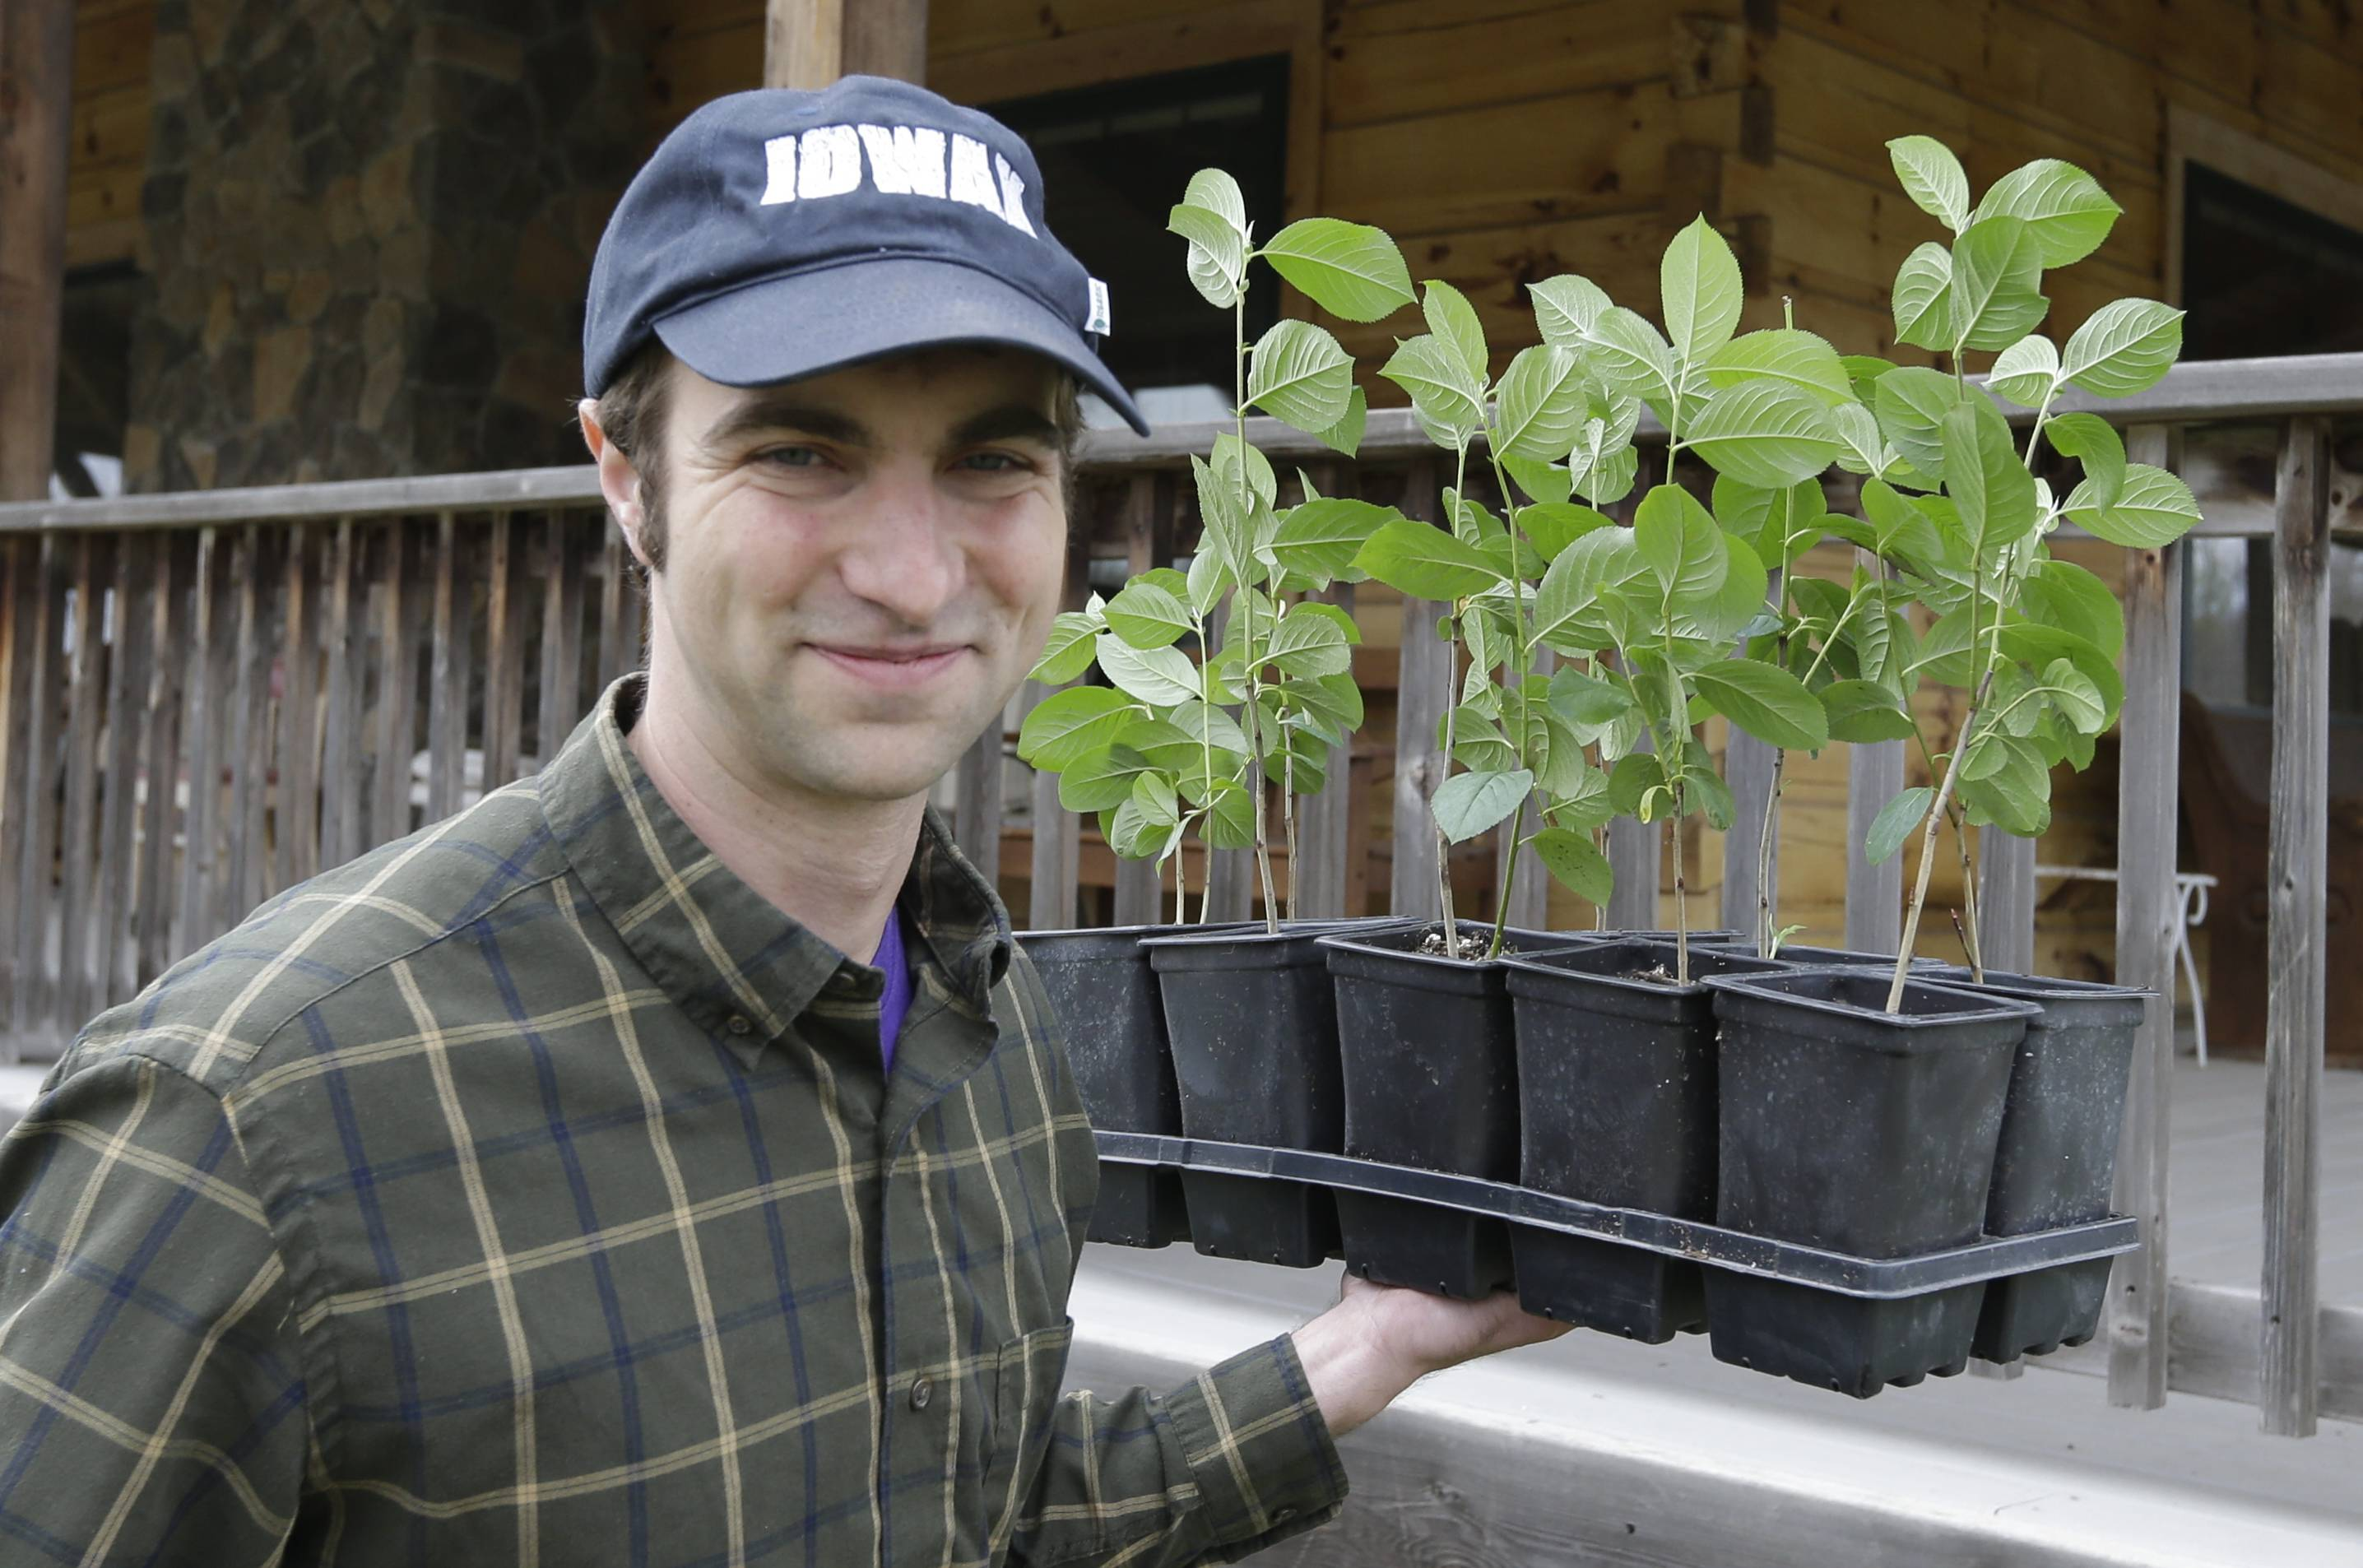 Andrew Pittz of the Sawmill Hollow aronia berry farm carries aronia berry seedlings in Missouri Valley, Iowa. A few years ago, few people had ever heard of the Aronia berry, a pretty, but tart fruit.